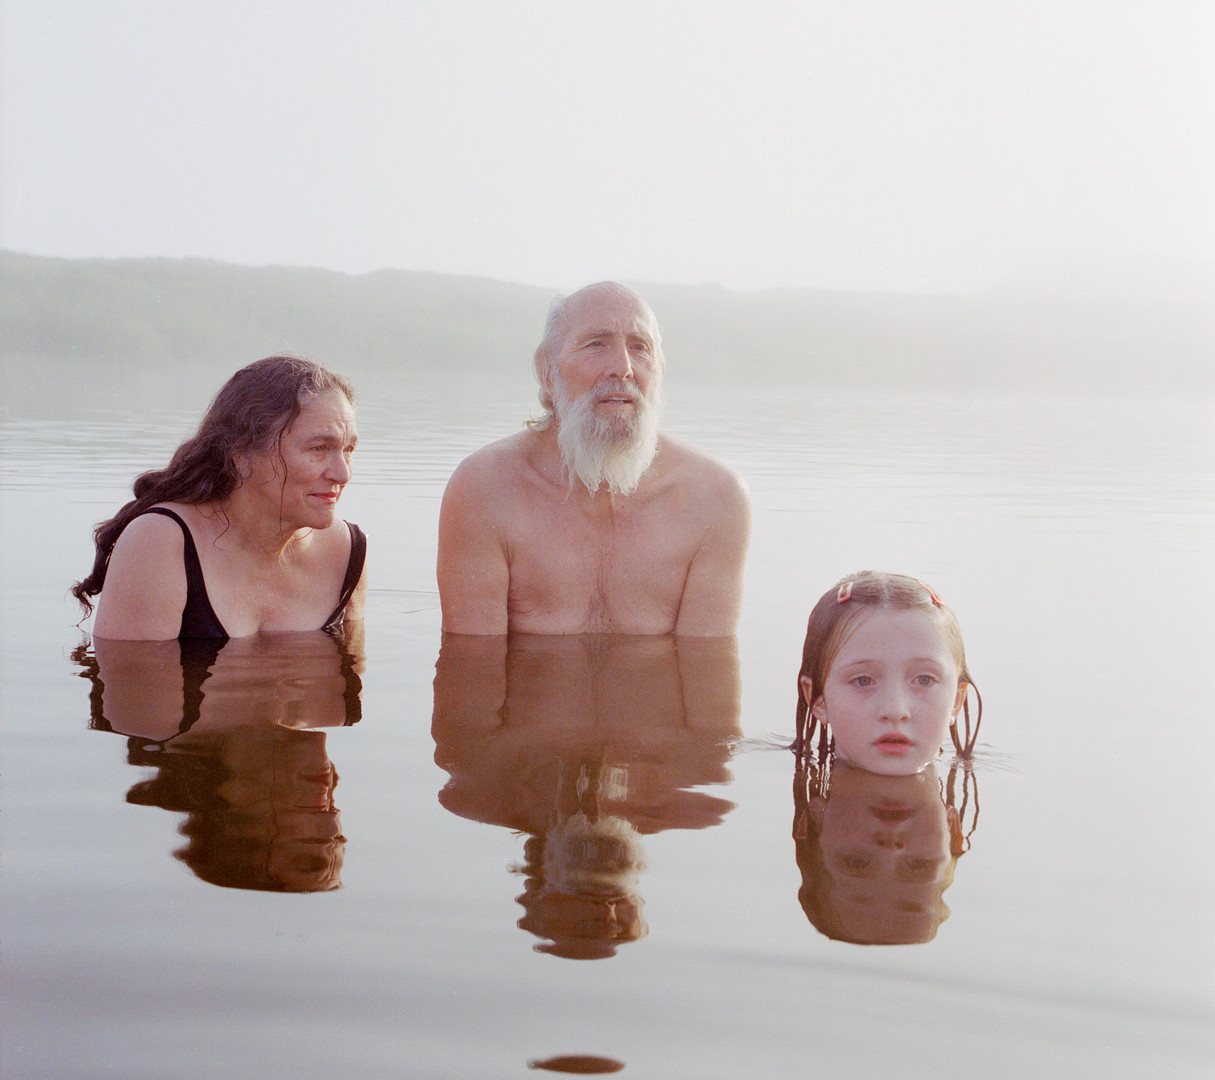 Jocelyn Lee, Untitled (Family at Fog Pond), 2005